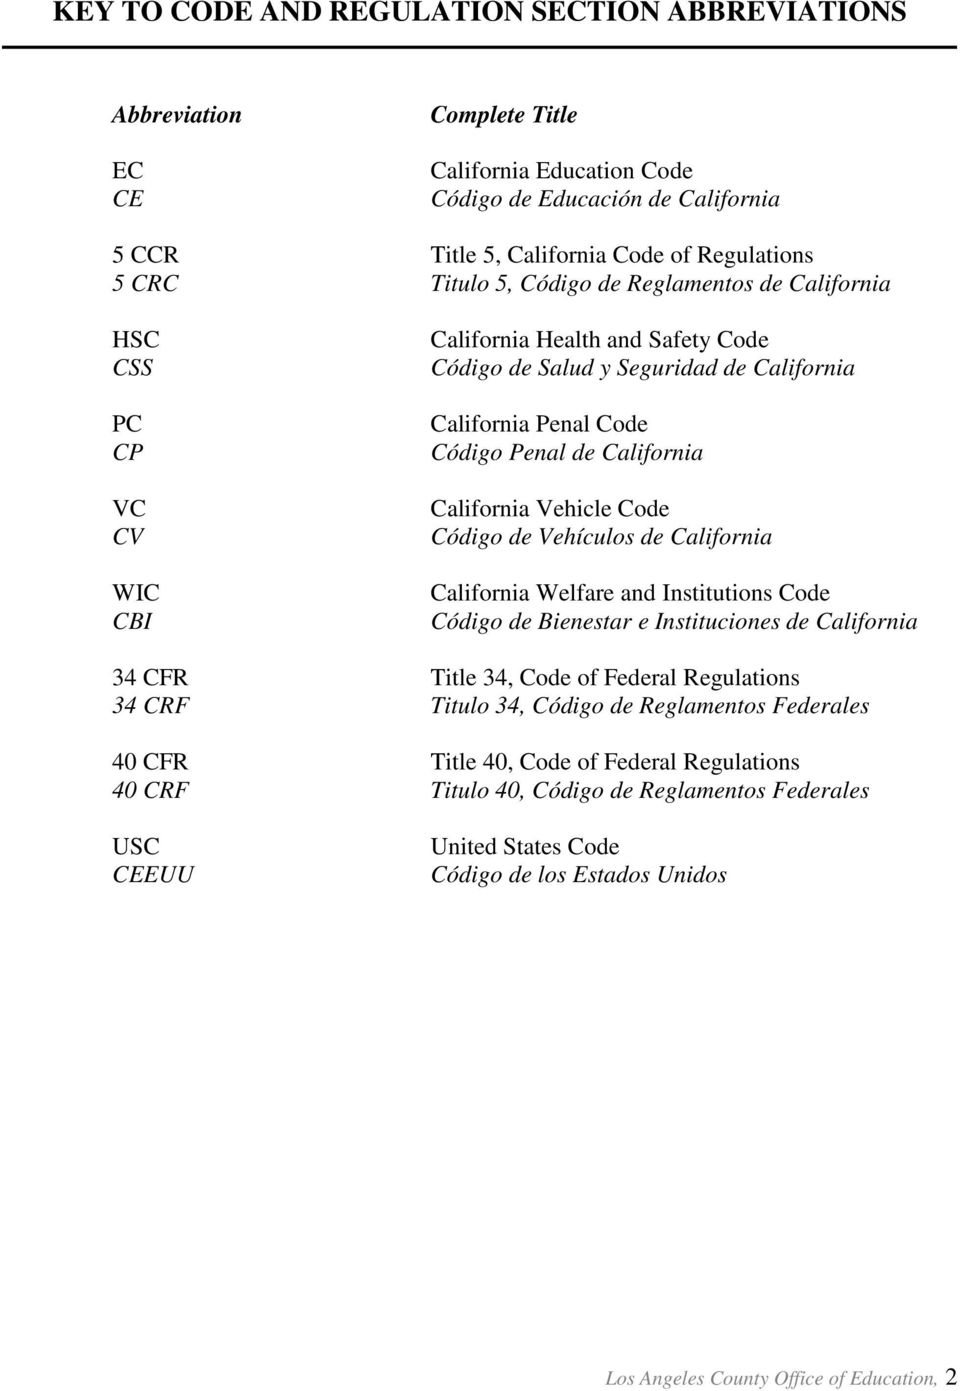 California Vehicle Code Código de Vehículos de California California Welfare and Institutions Code Código de Bienestar e Instituciones de California 34 CFR Title 34, Code of Federal Regulations 34